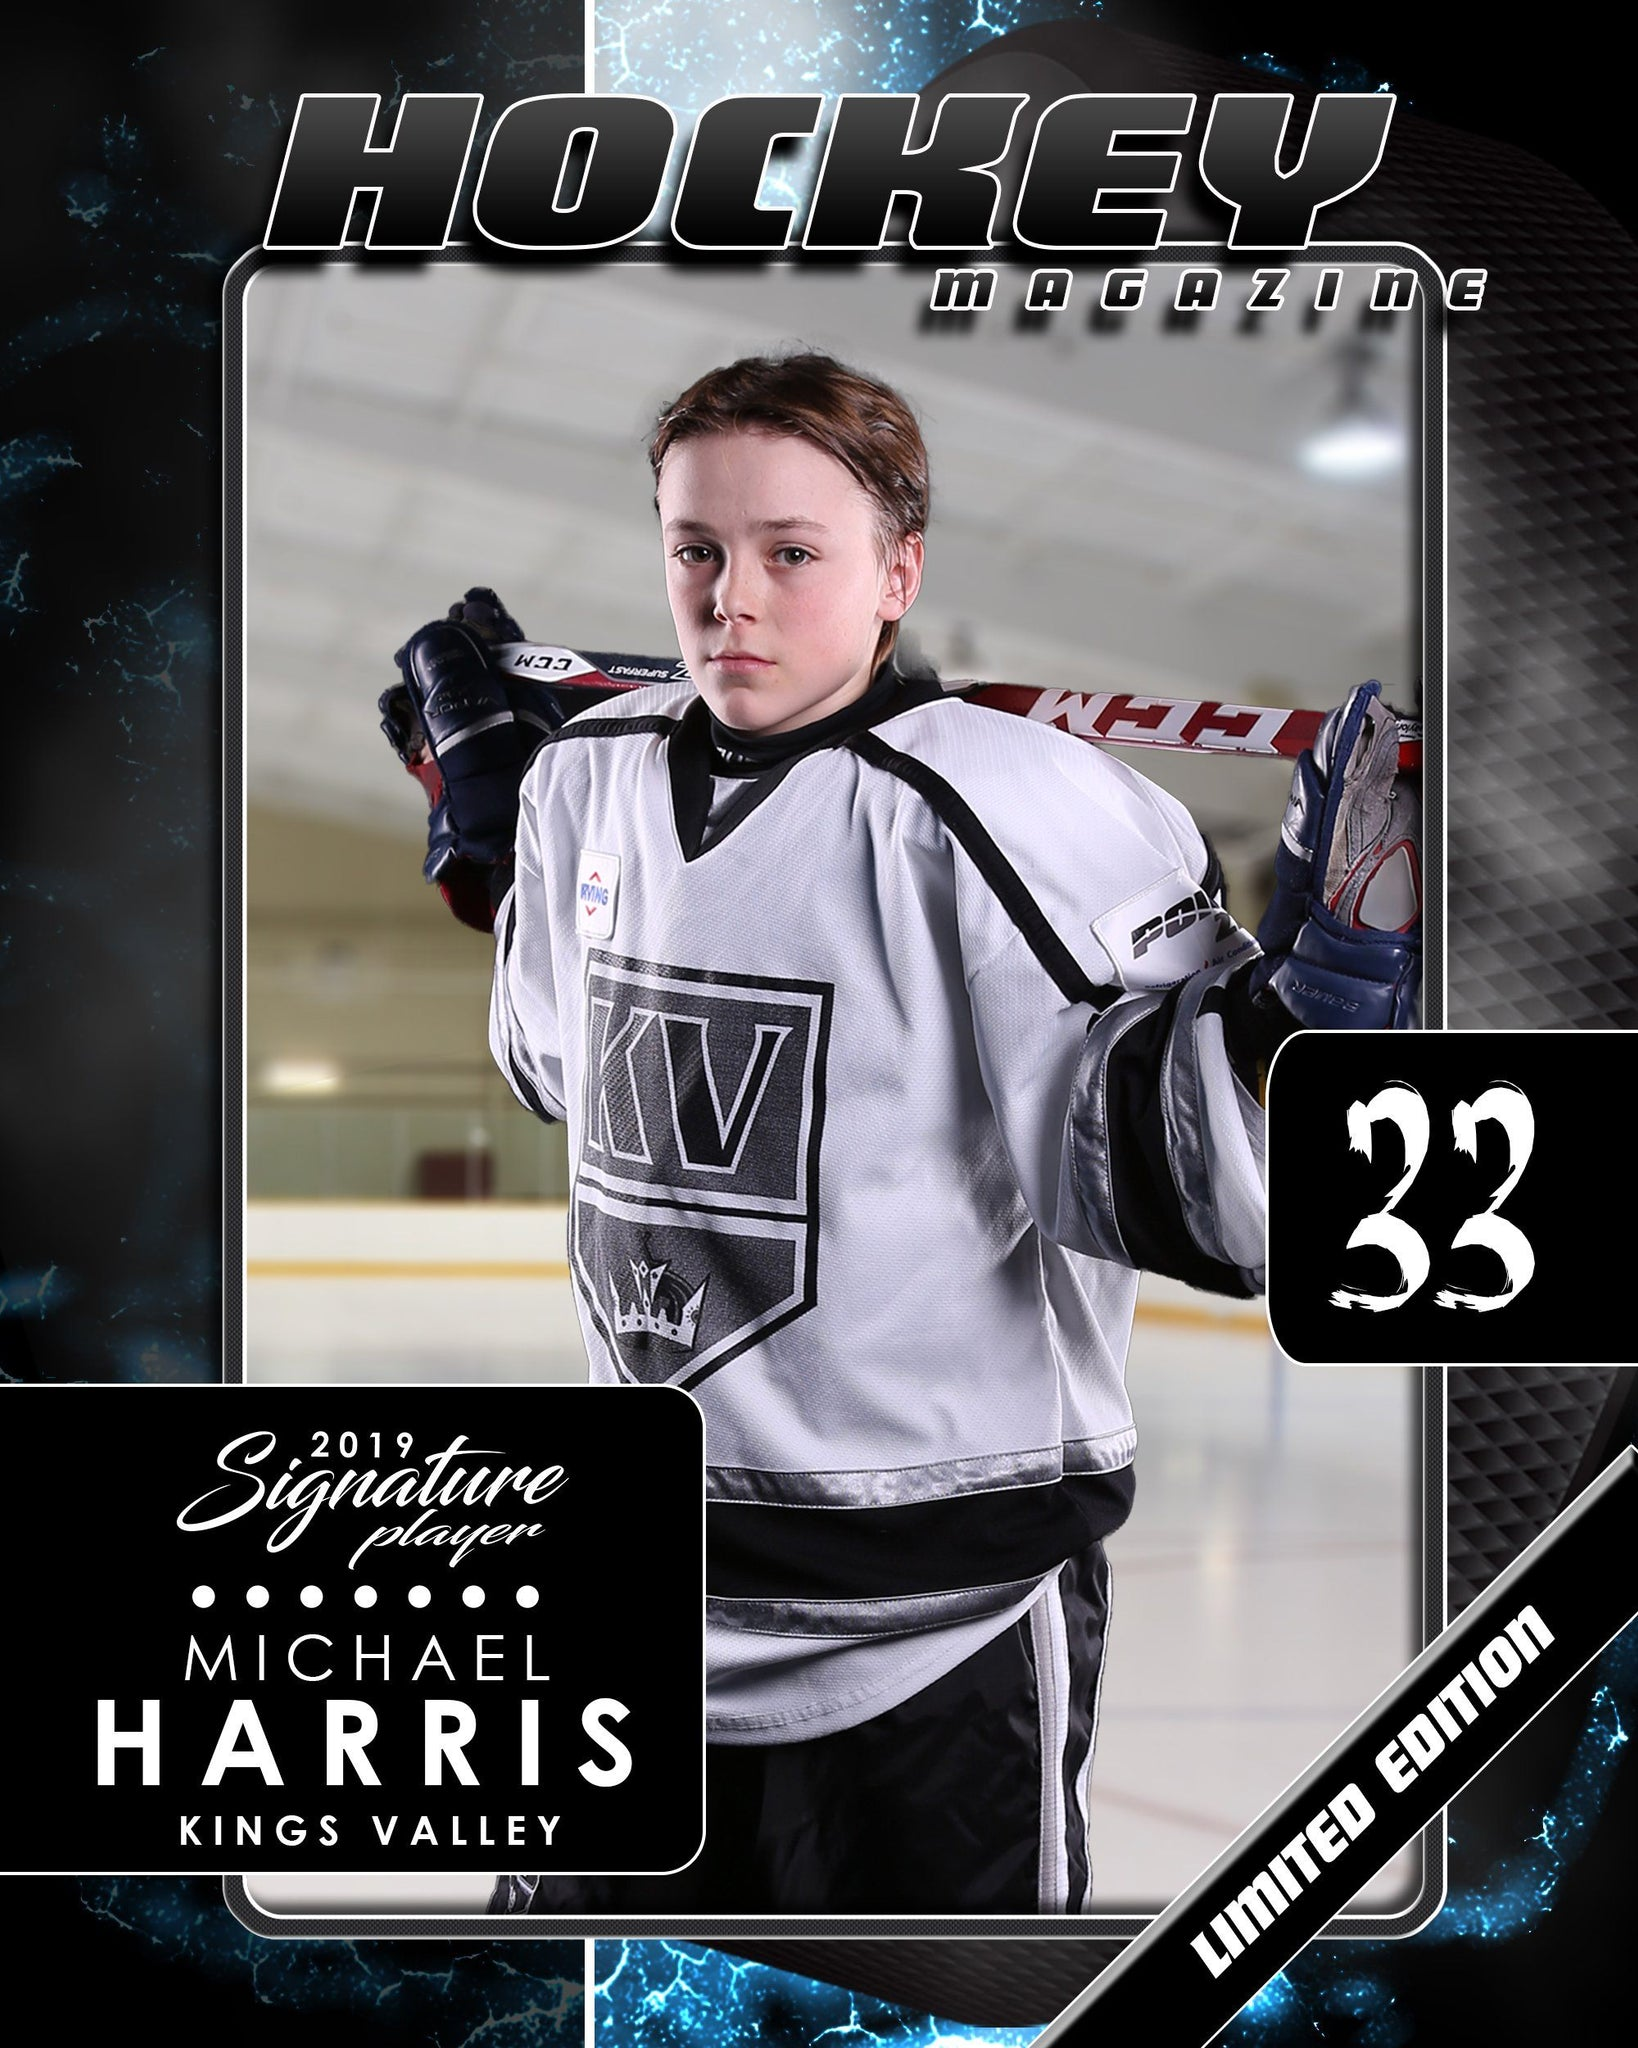 Signature Player - Hockey - V1 - Drop-In Magazine Cover Template-Photoshop Template - Photo Solutions